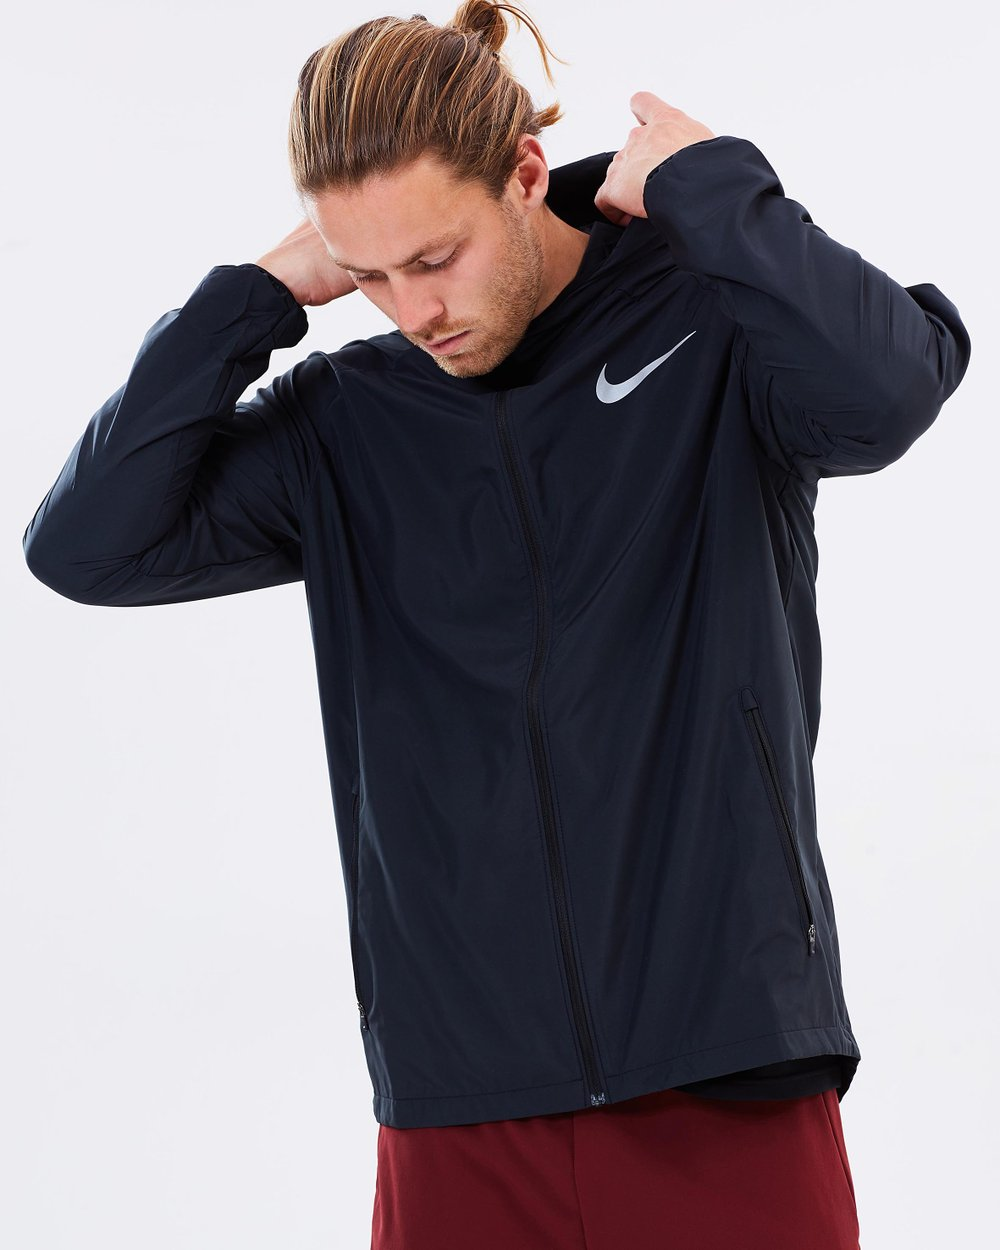 timeless design 12c02 5df8e Men s Nike Essential Hooded Running Jacket by Nike Online   THE ICONIC    Australia